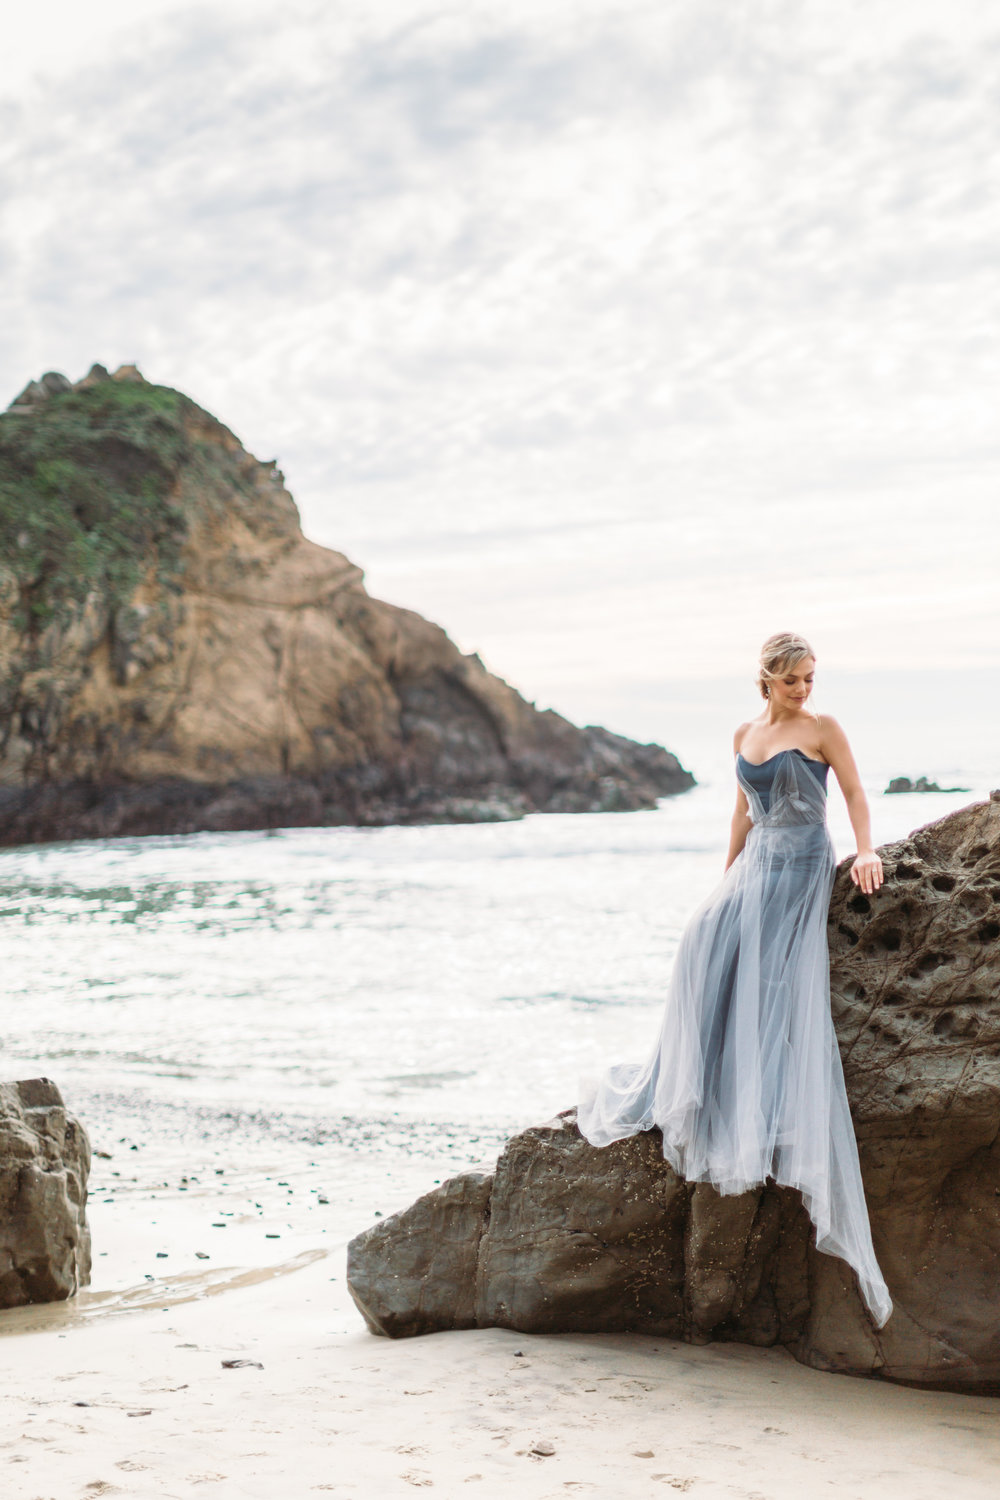 big-sur-wedding-tara-latour-15.jpg